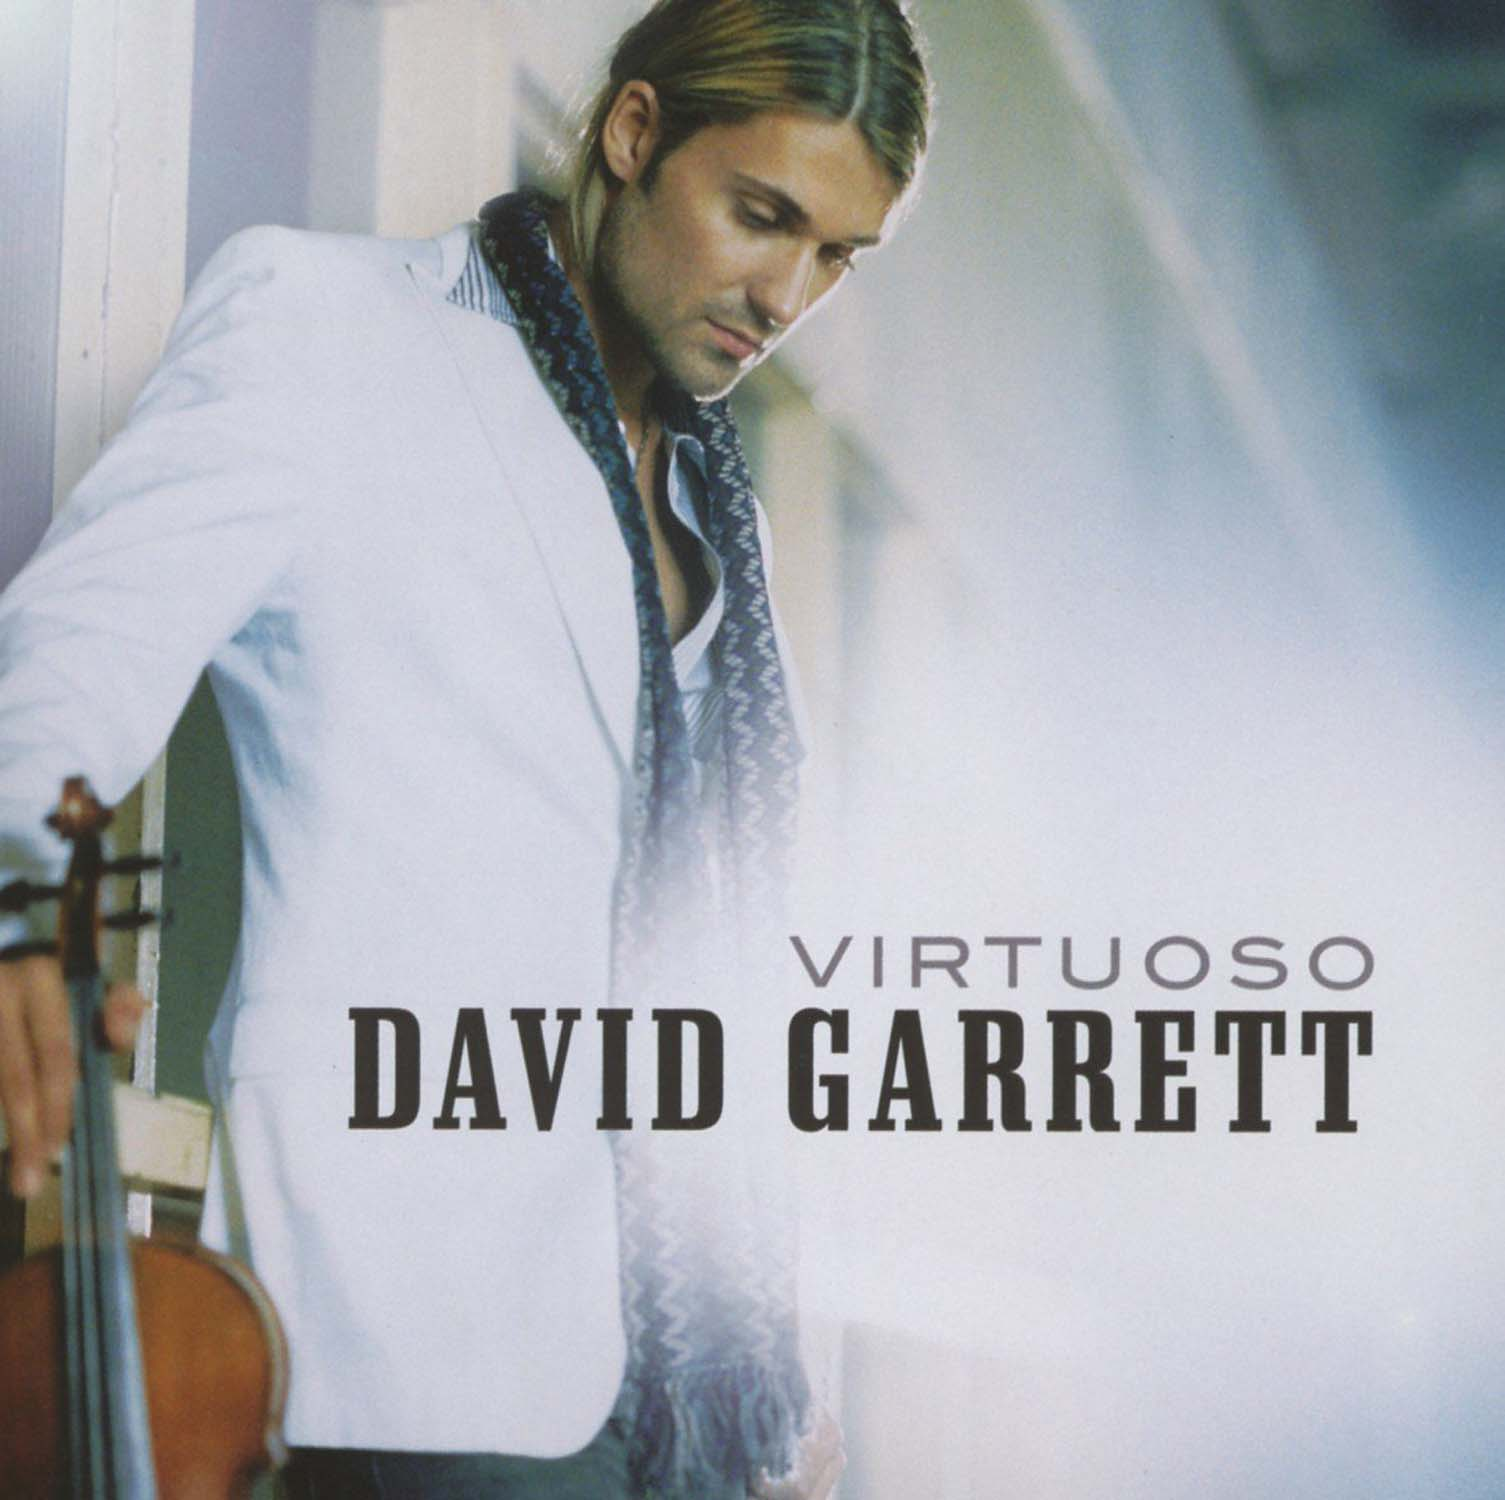 DAVID GARRETT - VIRTUOSO (CD)